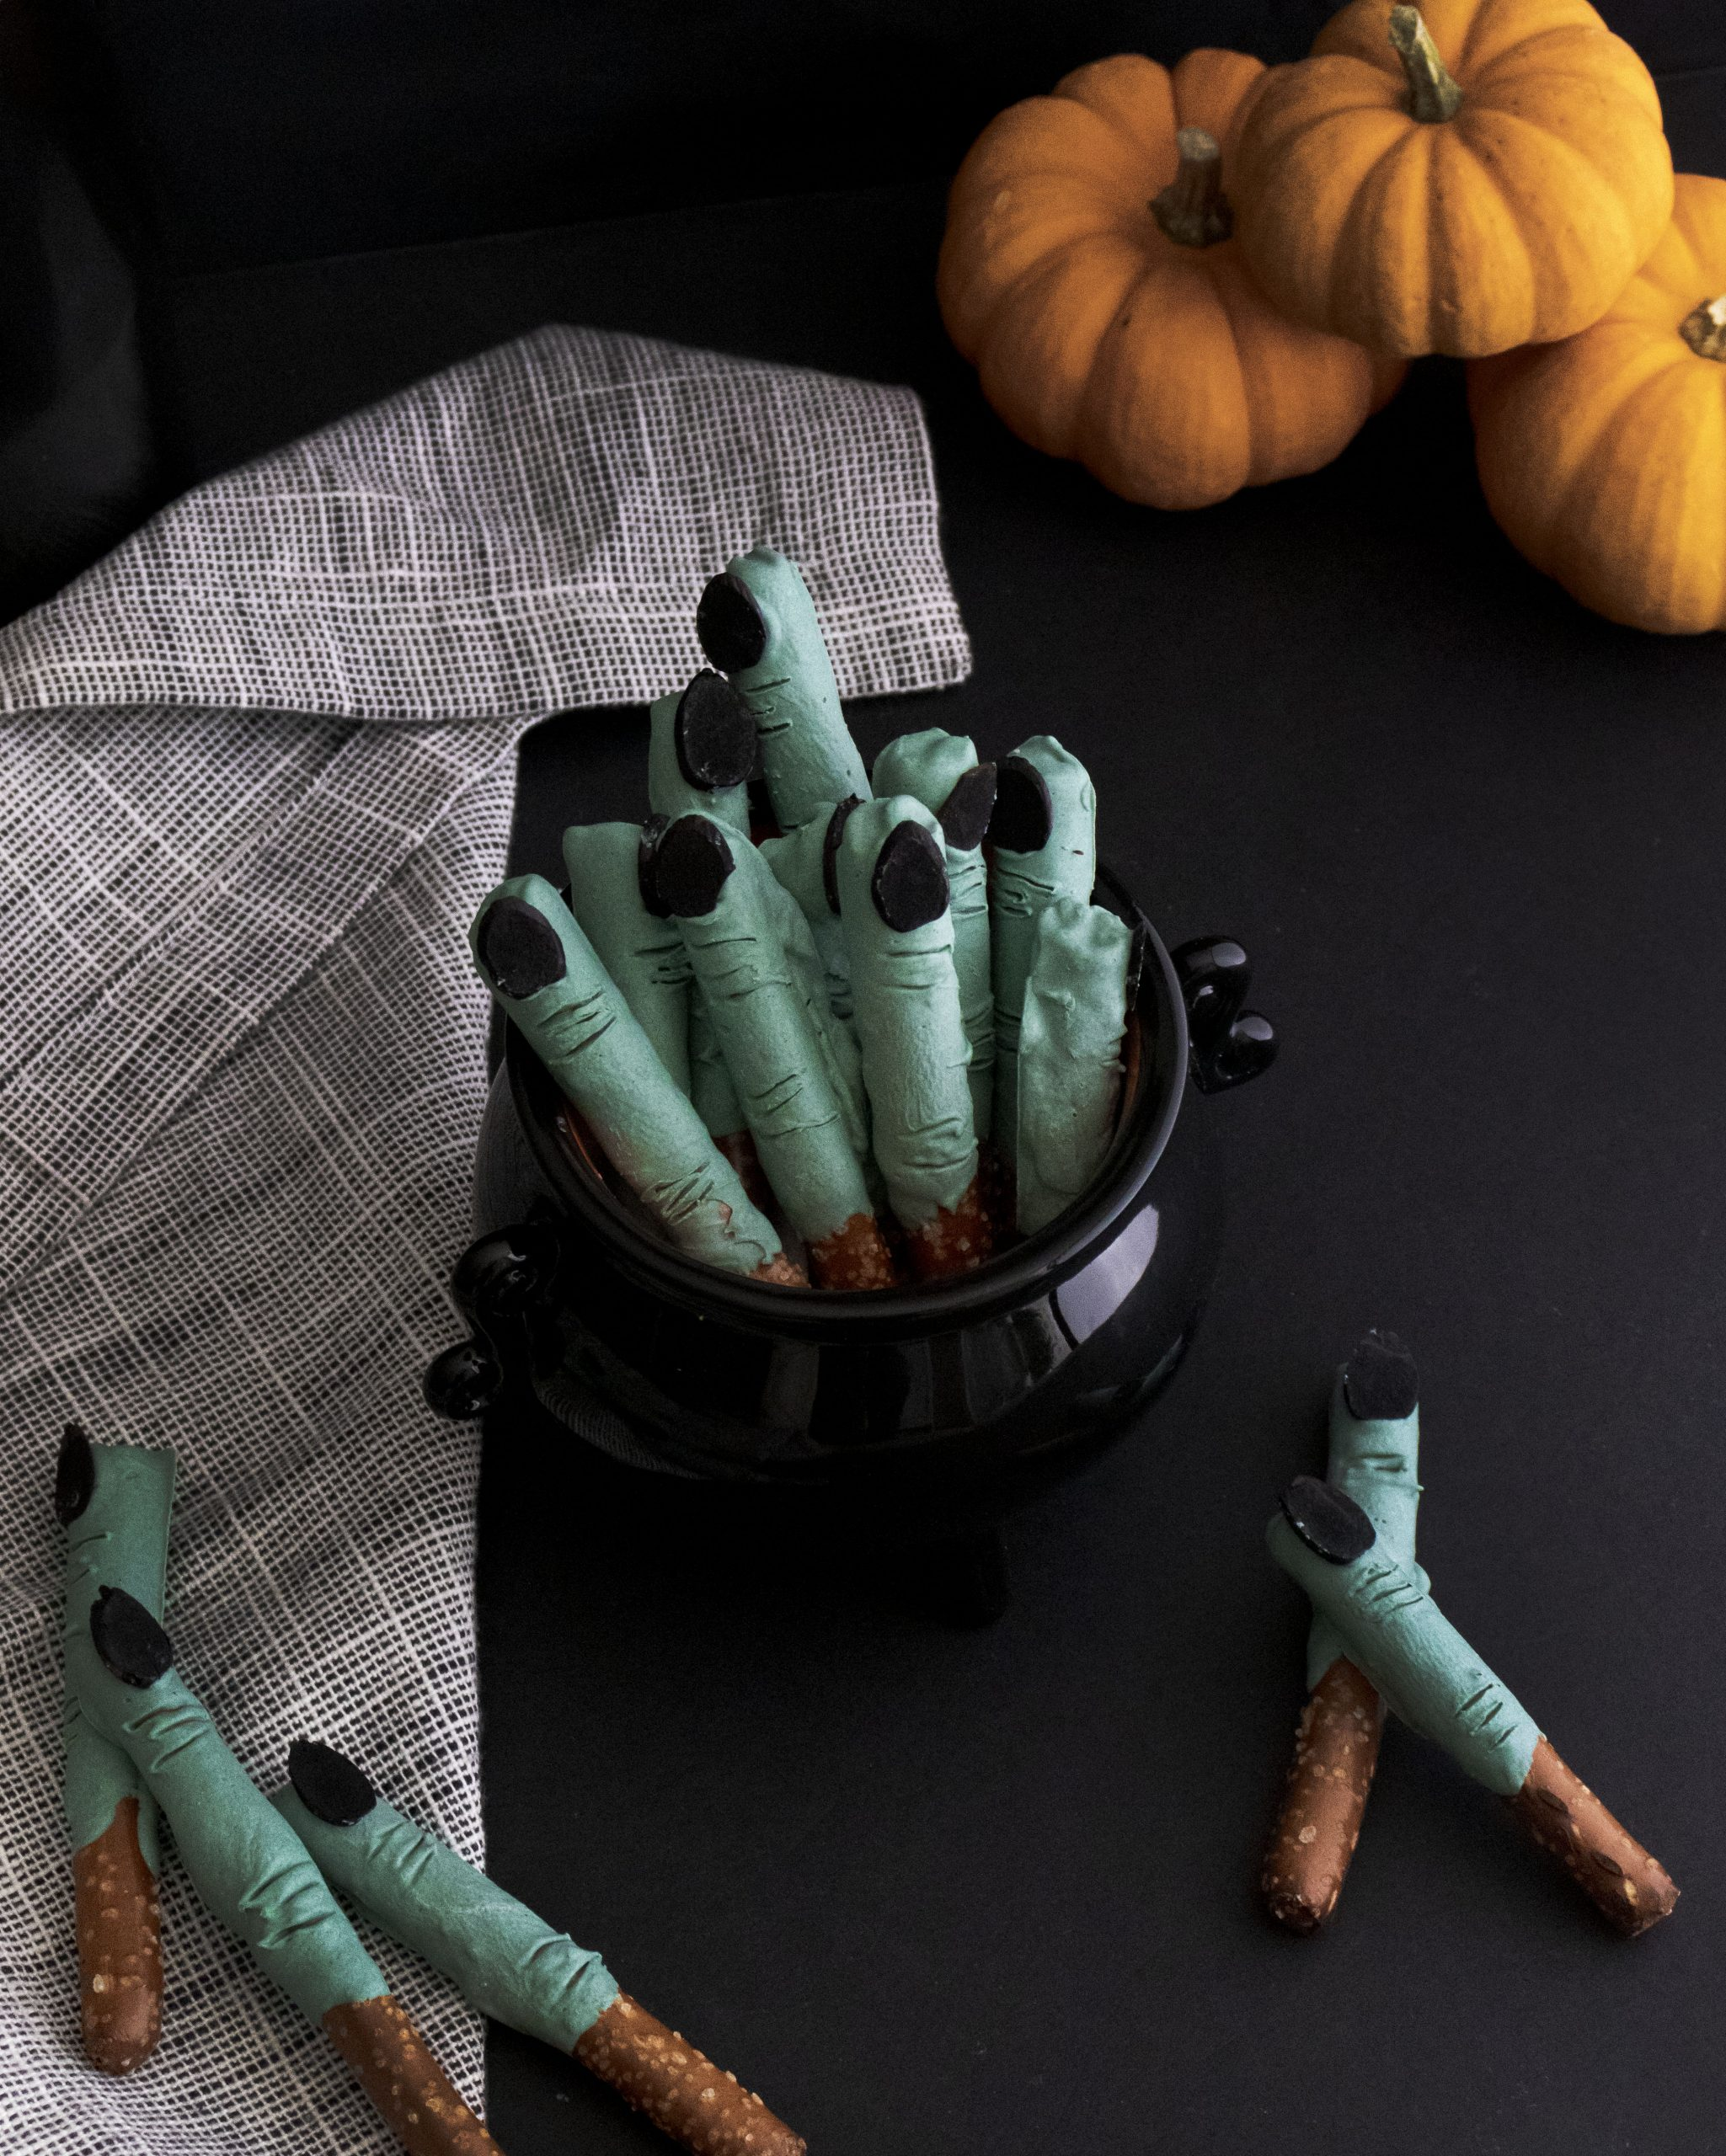 Planning a Halloween get together or just looking for a spooky Halloween snack for the kids? Check out these Creepy Witch Finger Pretzel Sticks. You'll love making them just as much as you love eating them. #halloween #halloweenrecipe #halloweenfood #witch #halloweenparty #witchfingers